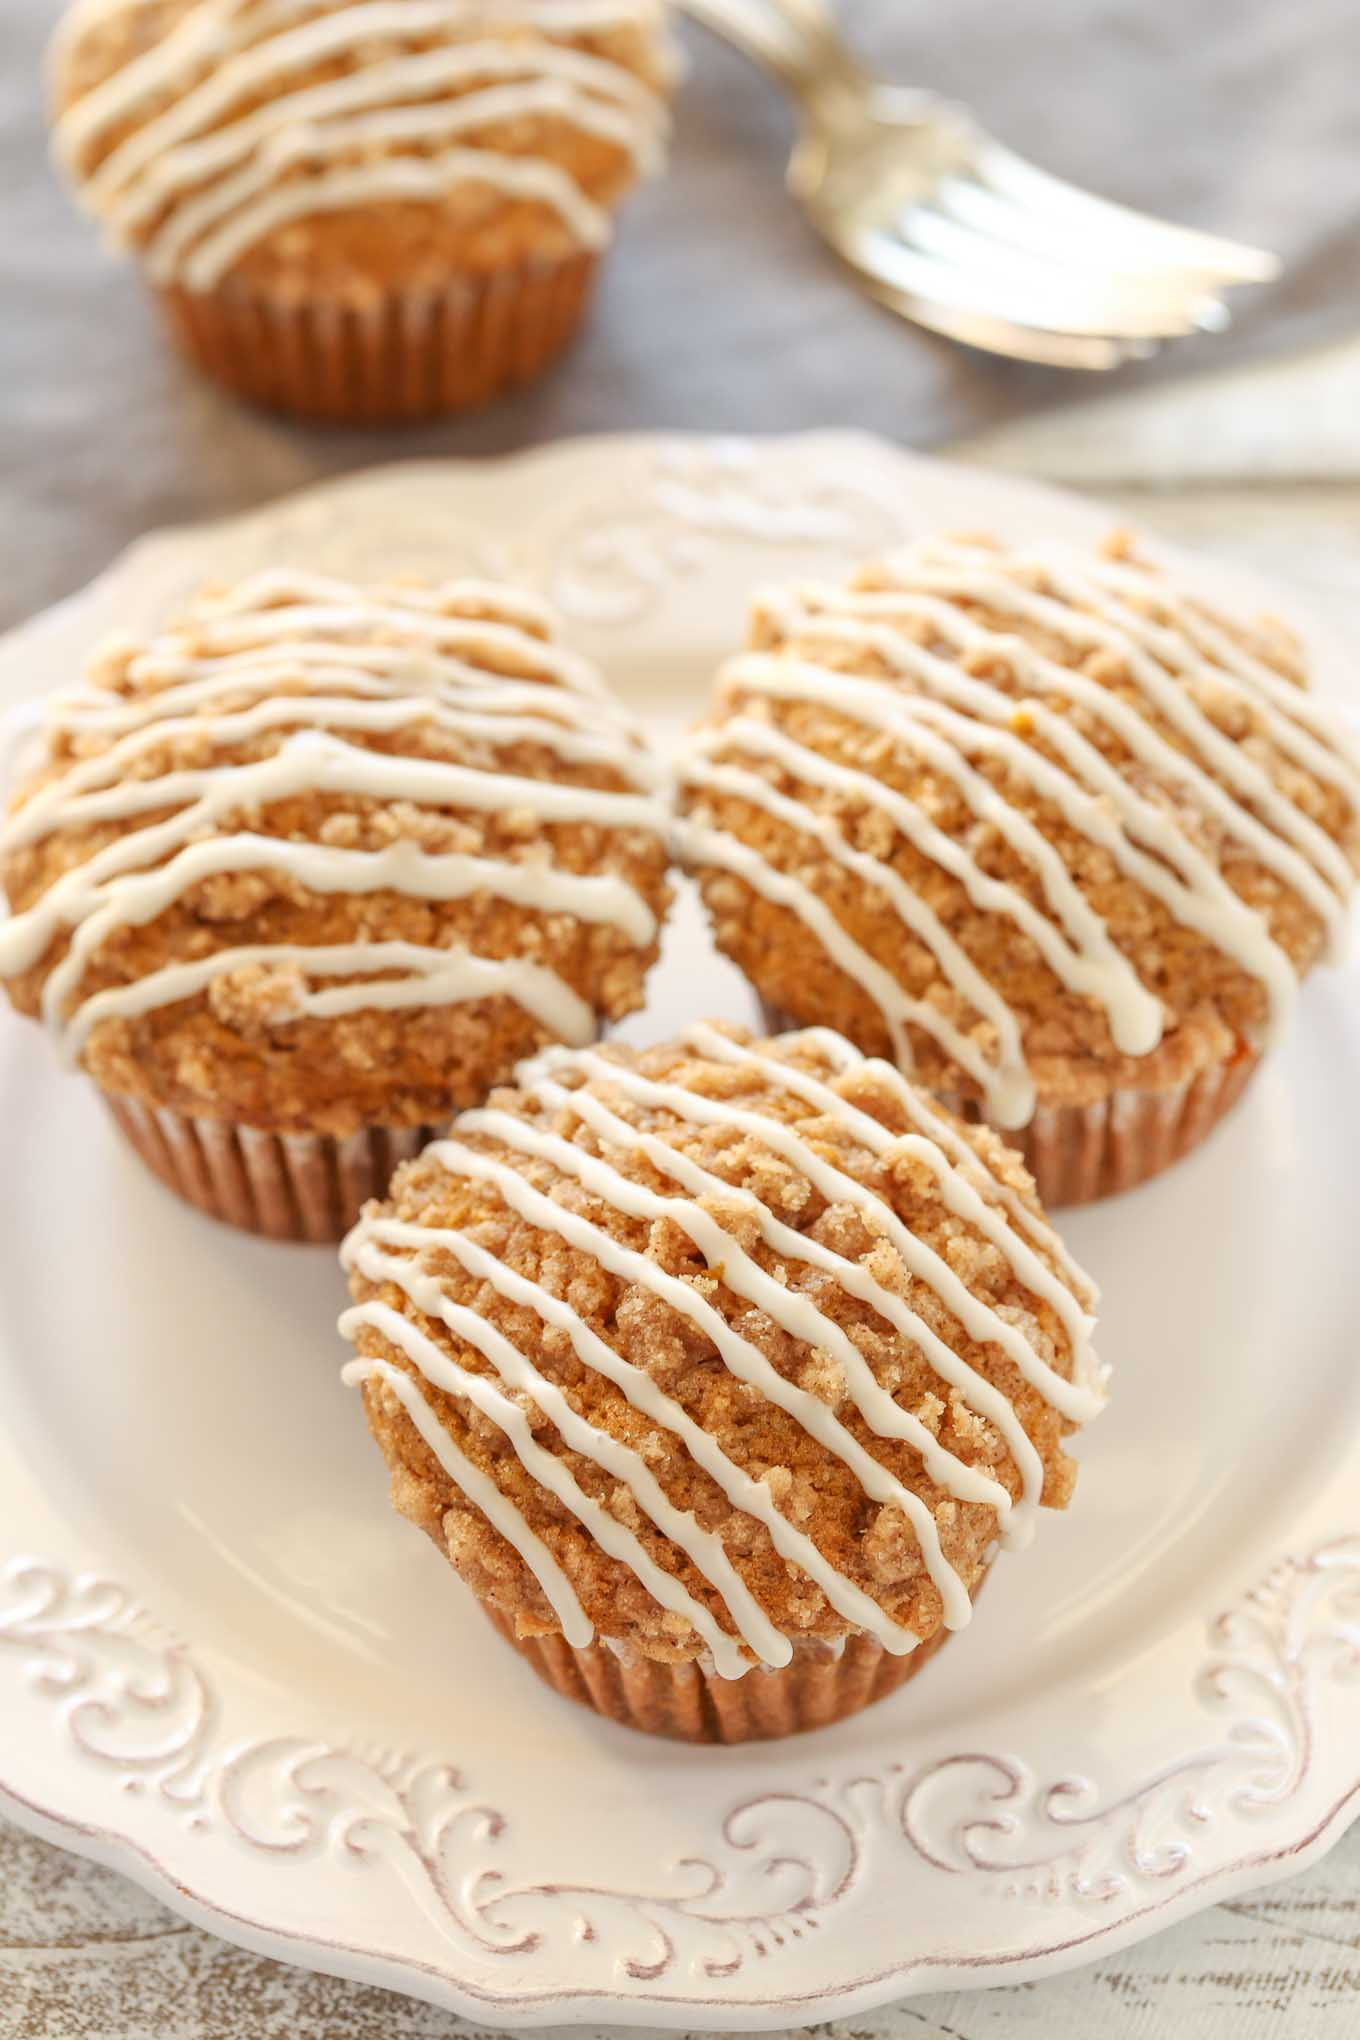 An easy recipe for soft pumpkin muffins with a crumb topping and vanilla glaze. These pumpkin crumb muffins are perfect for a fall breakfast or dessert!